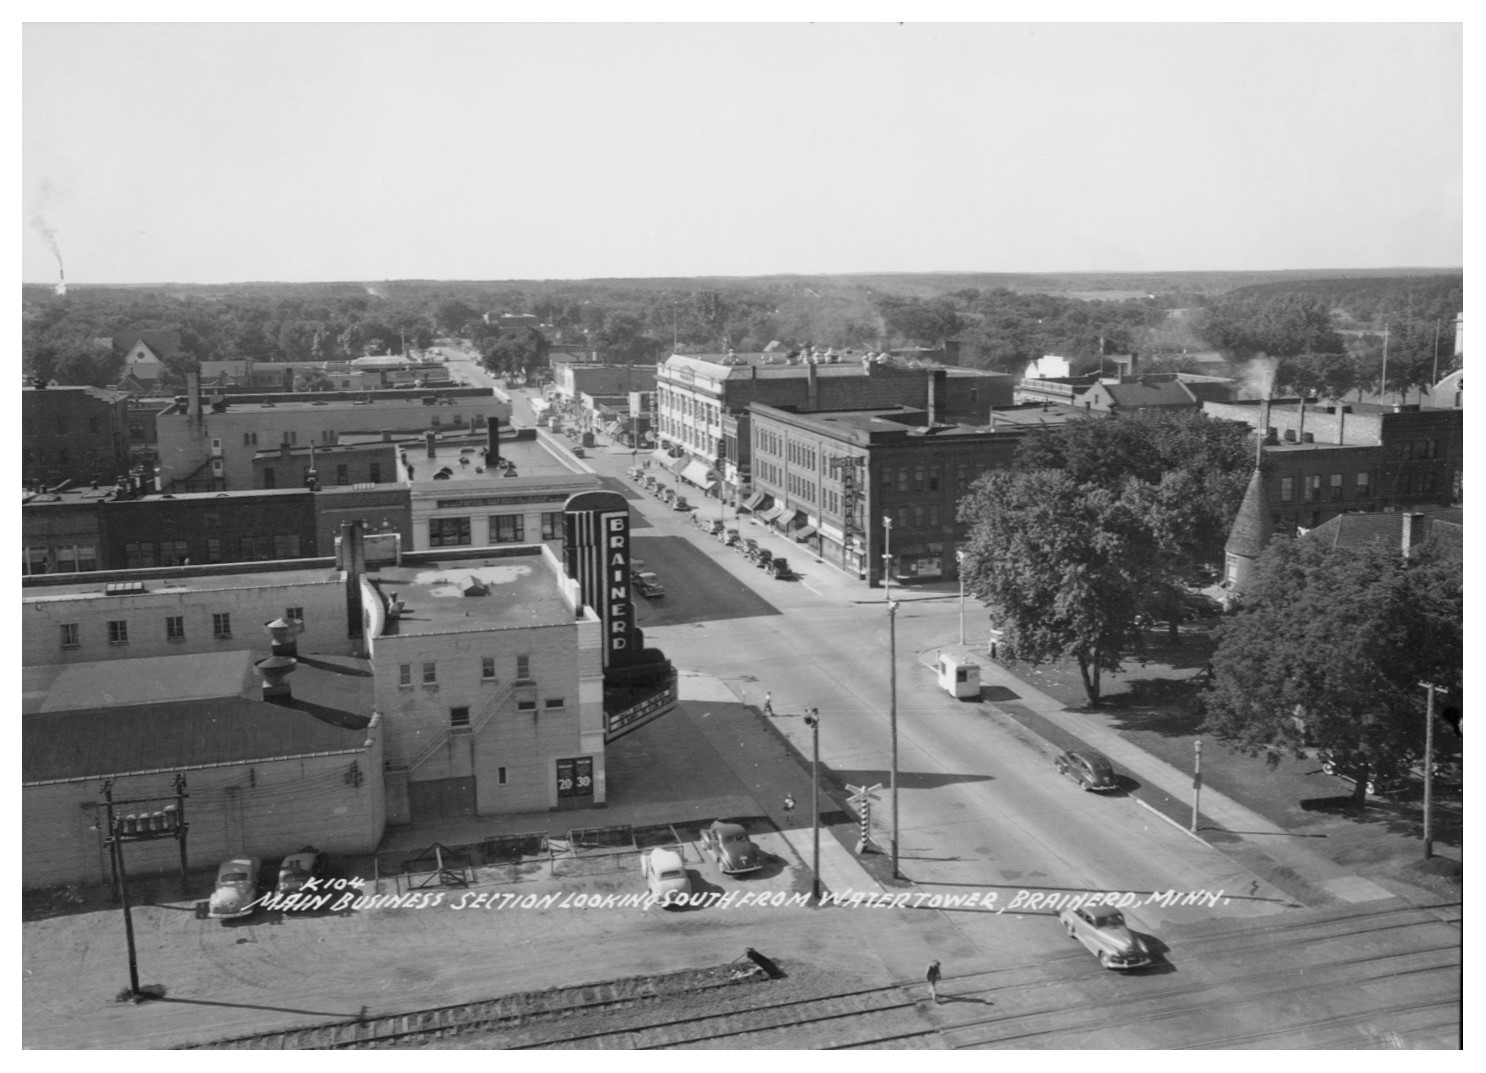 South 6th Street in a prior era. Almost all of the buildings seen in this photo have been demolished to provide parking.